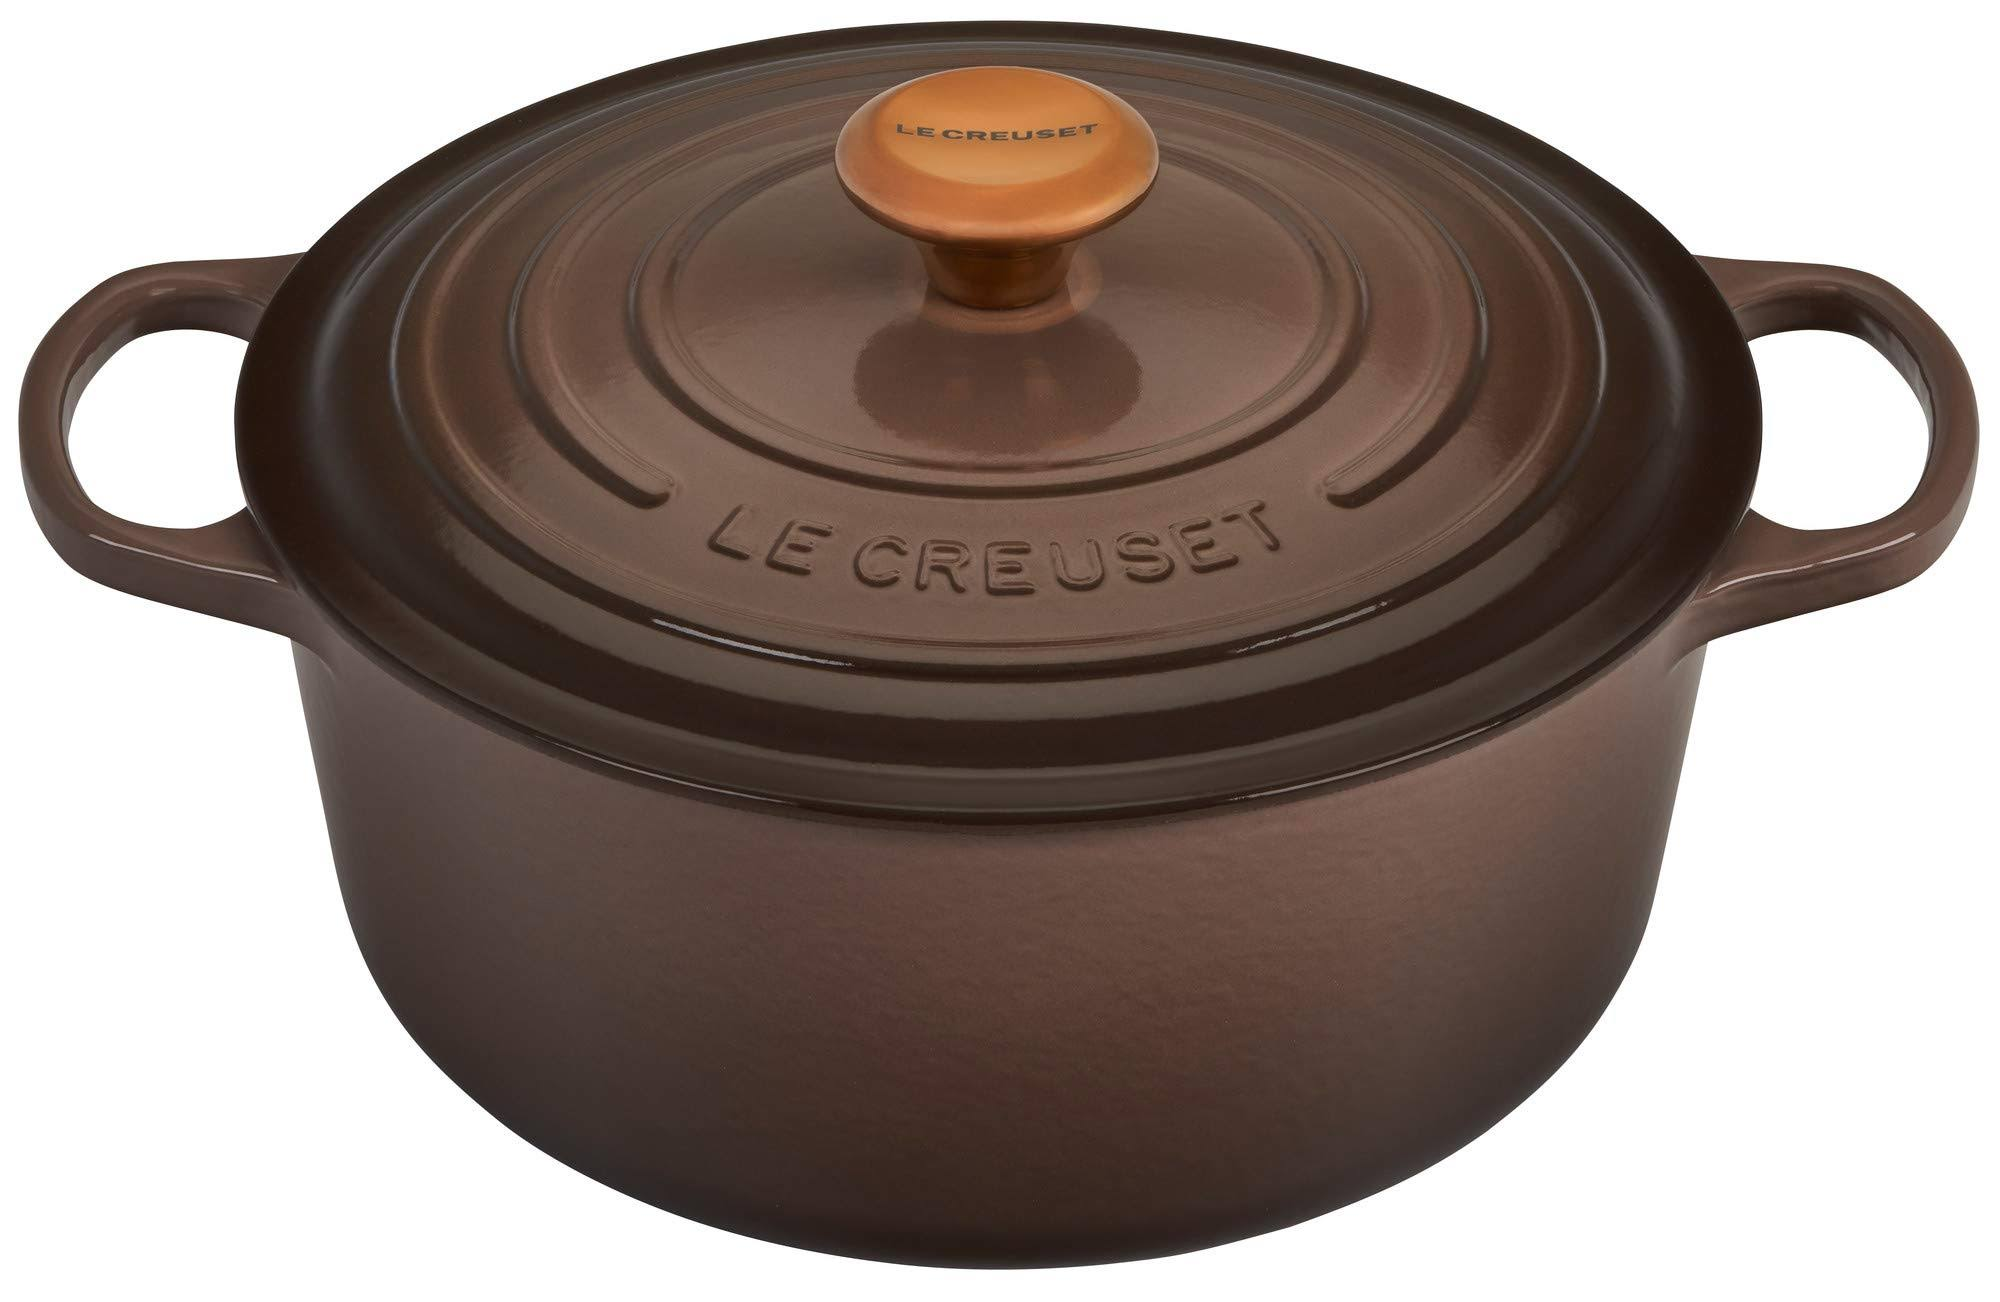 Le Creuset Signature Cast Iron 5.5-Quart Truffle Round Dutch Oven